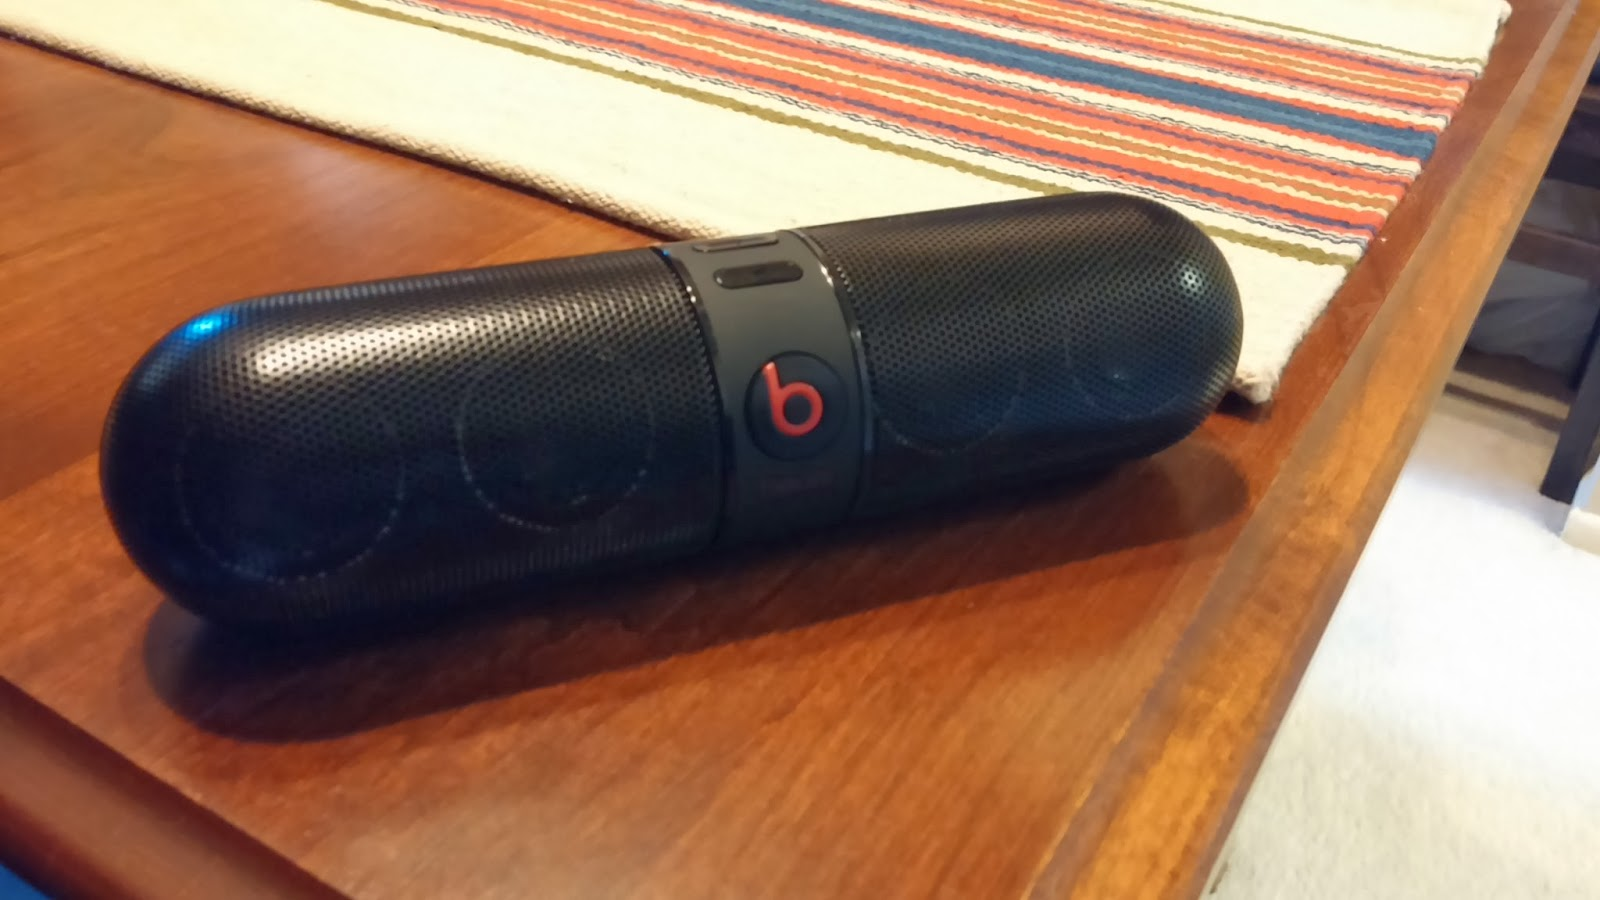 Beats pill by dre review / Buy hapi drum